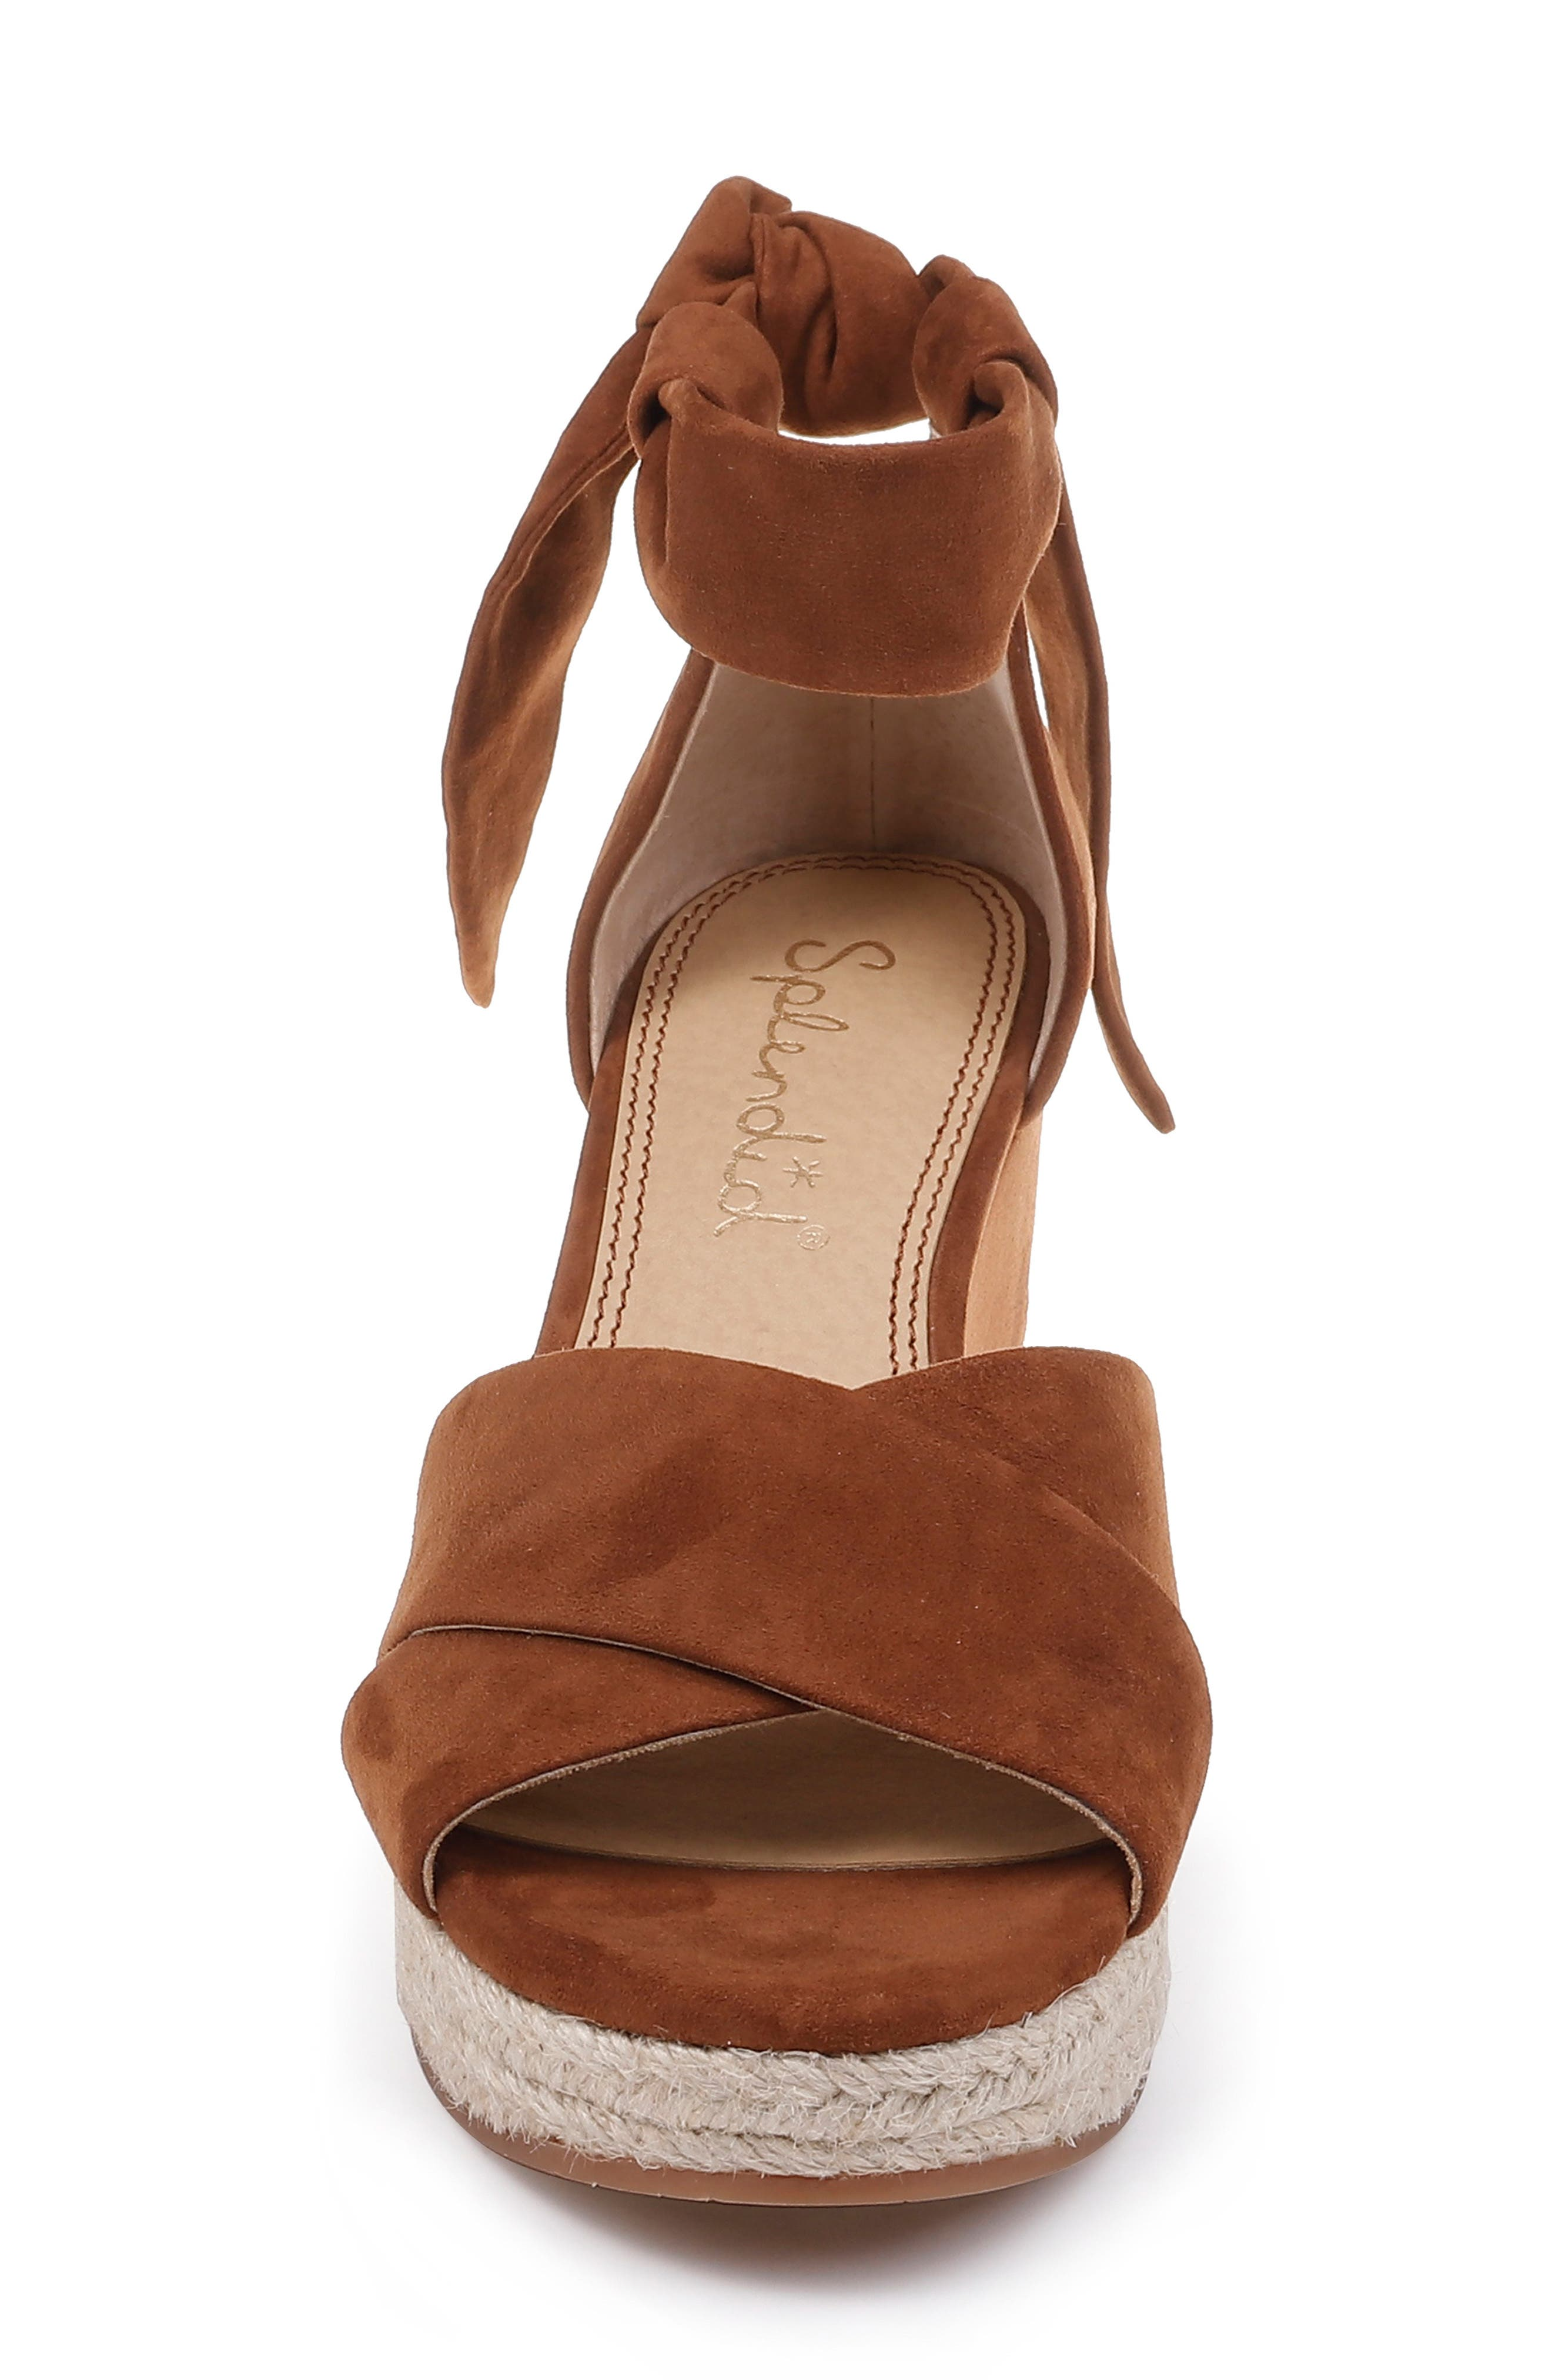 SPLENDID, Terrence Ankle Wrap Wedge Sandal, Alternate thumbnail 4, color, CHESTNUT SUEDE